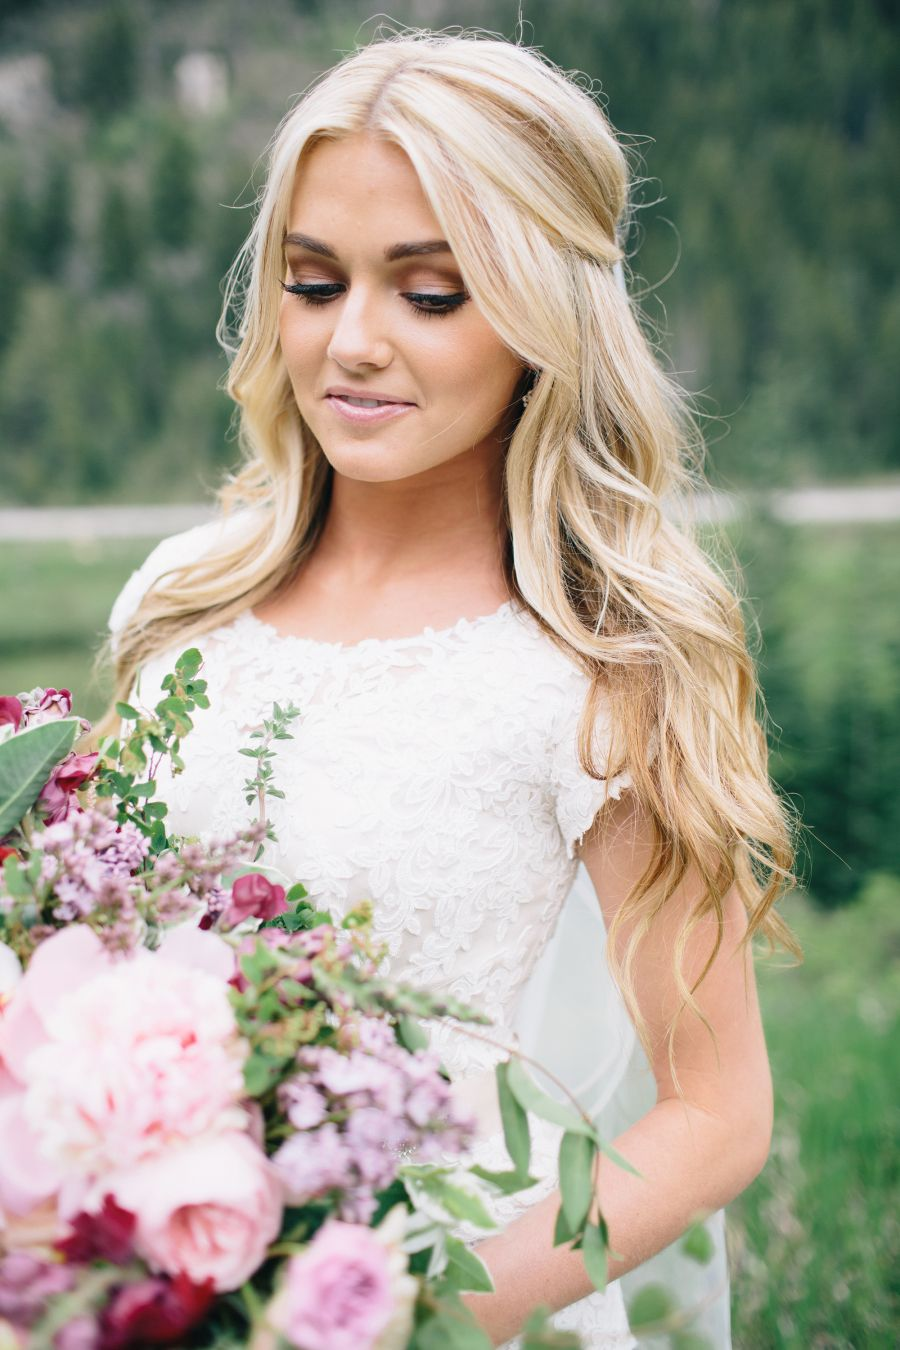 pops of pretty moonlight floral designs and vaulting